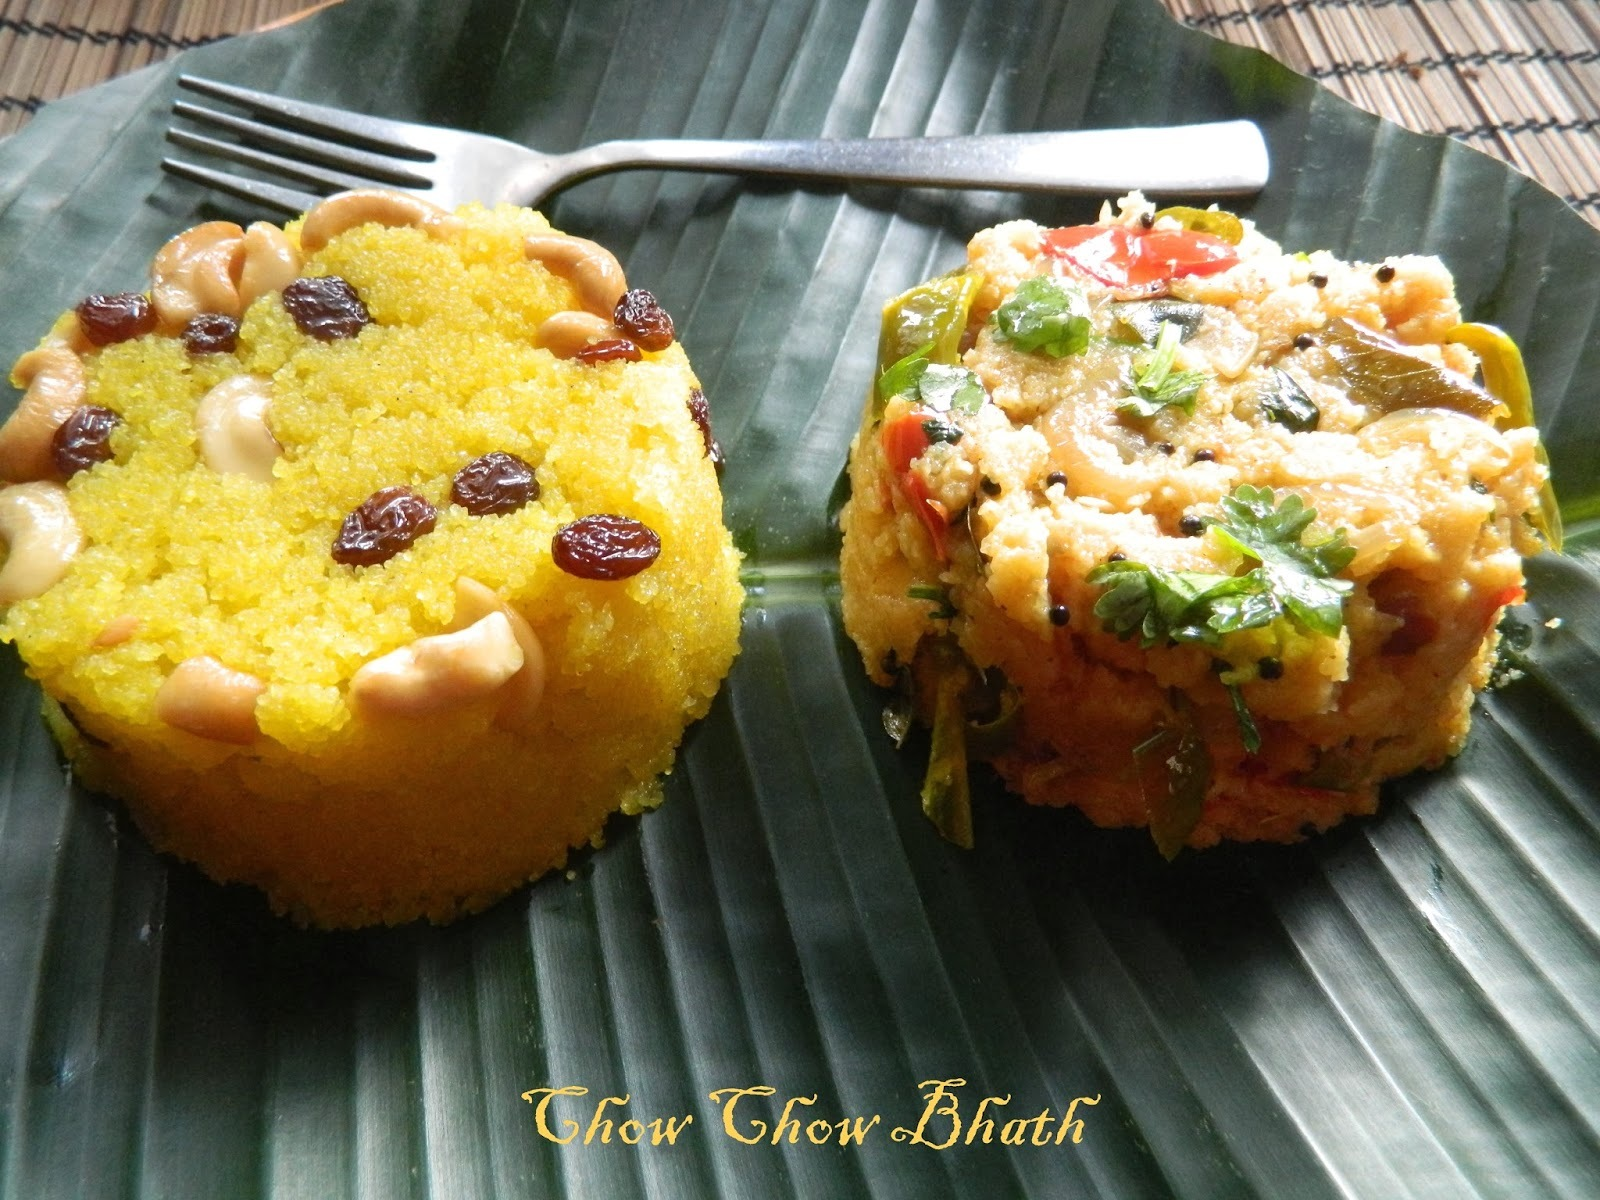 Chow Chow Baath,combination of Kesari Bhath/Sheera and Kharabhath